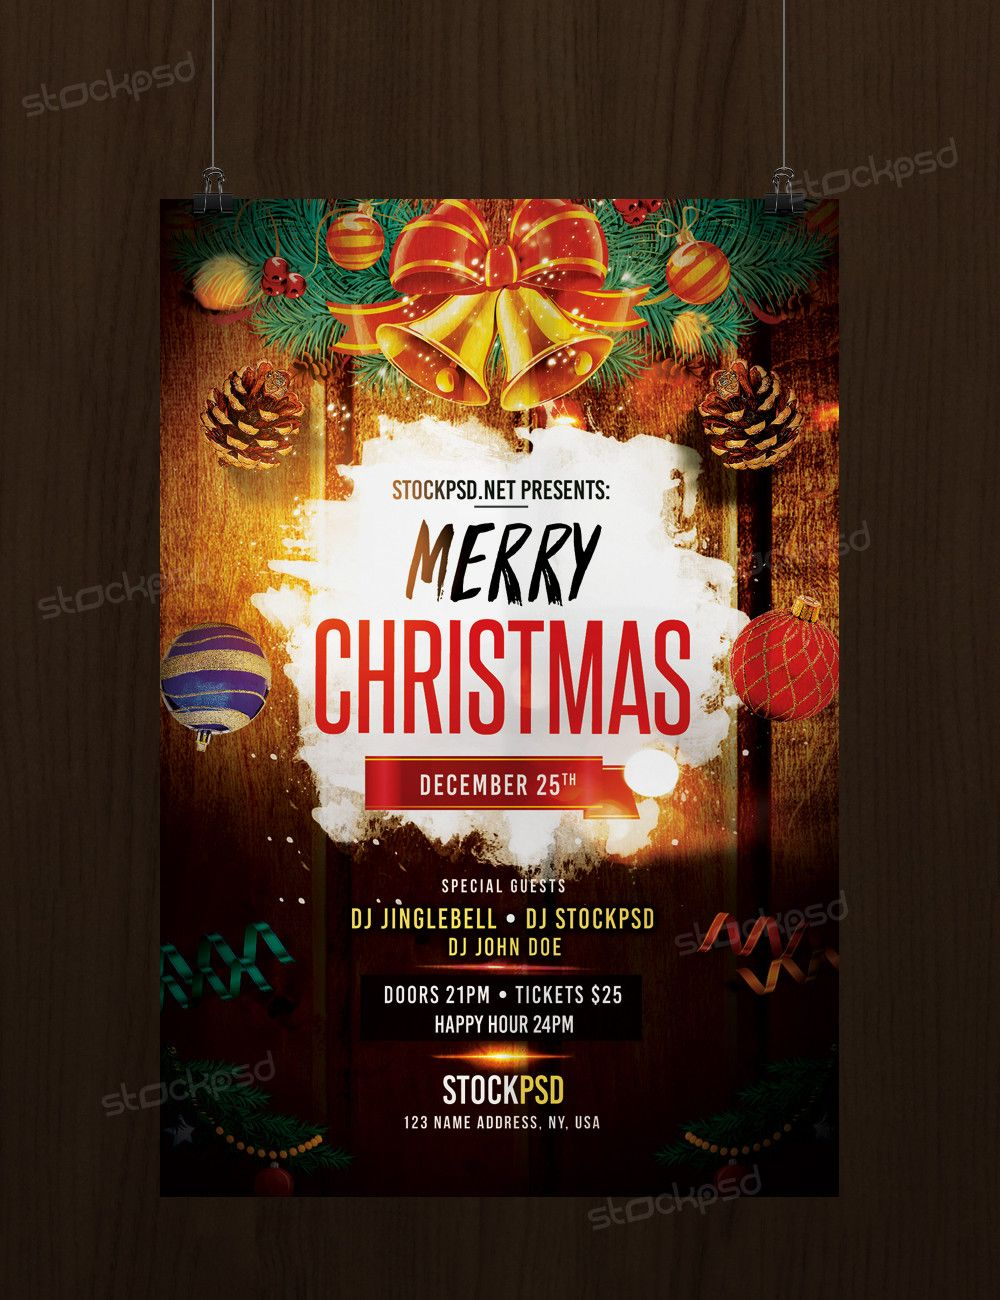 Download Merry Christmas Free Psd Flyer Template Free Psd